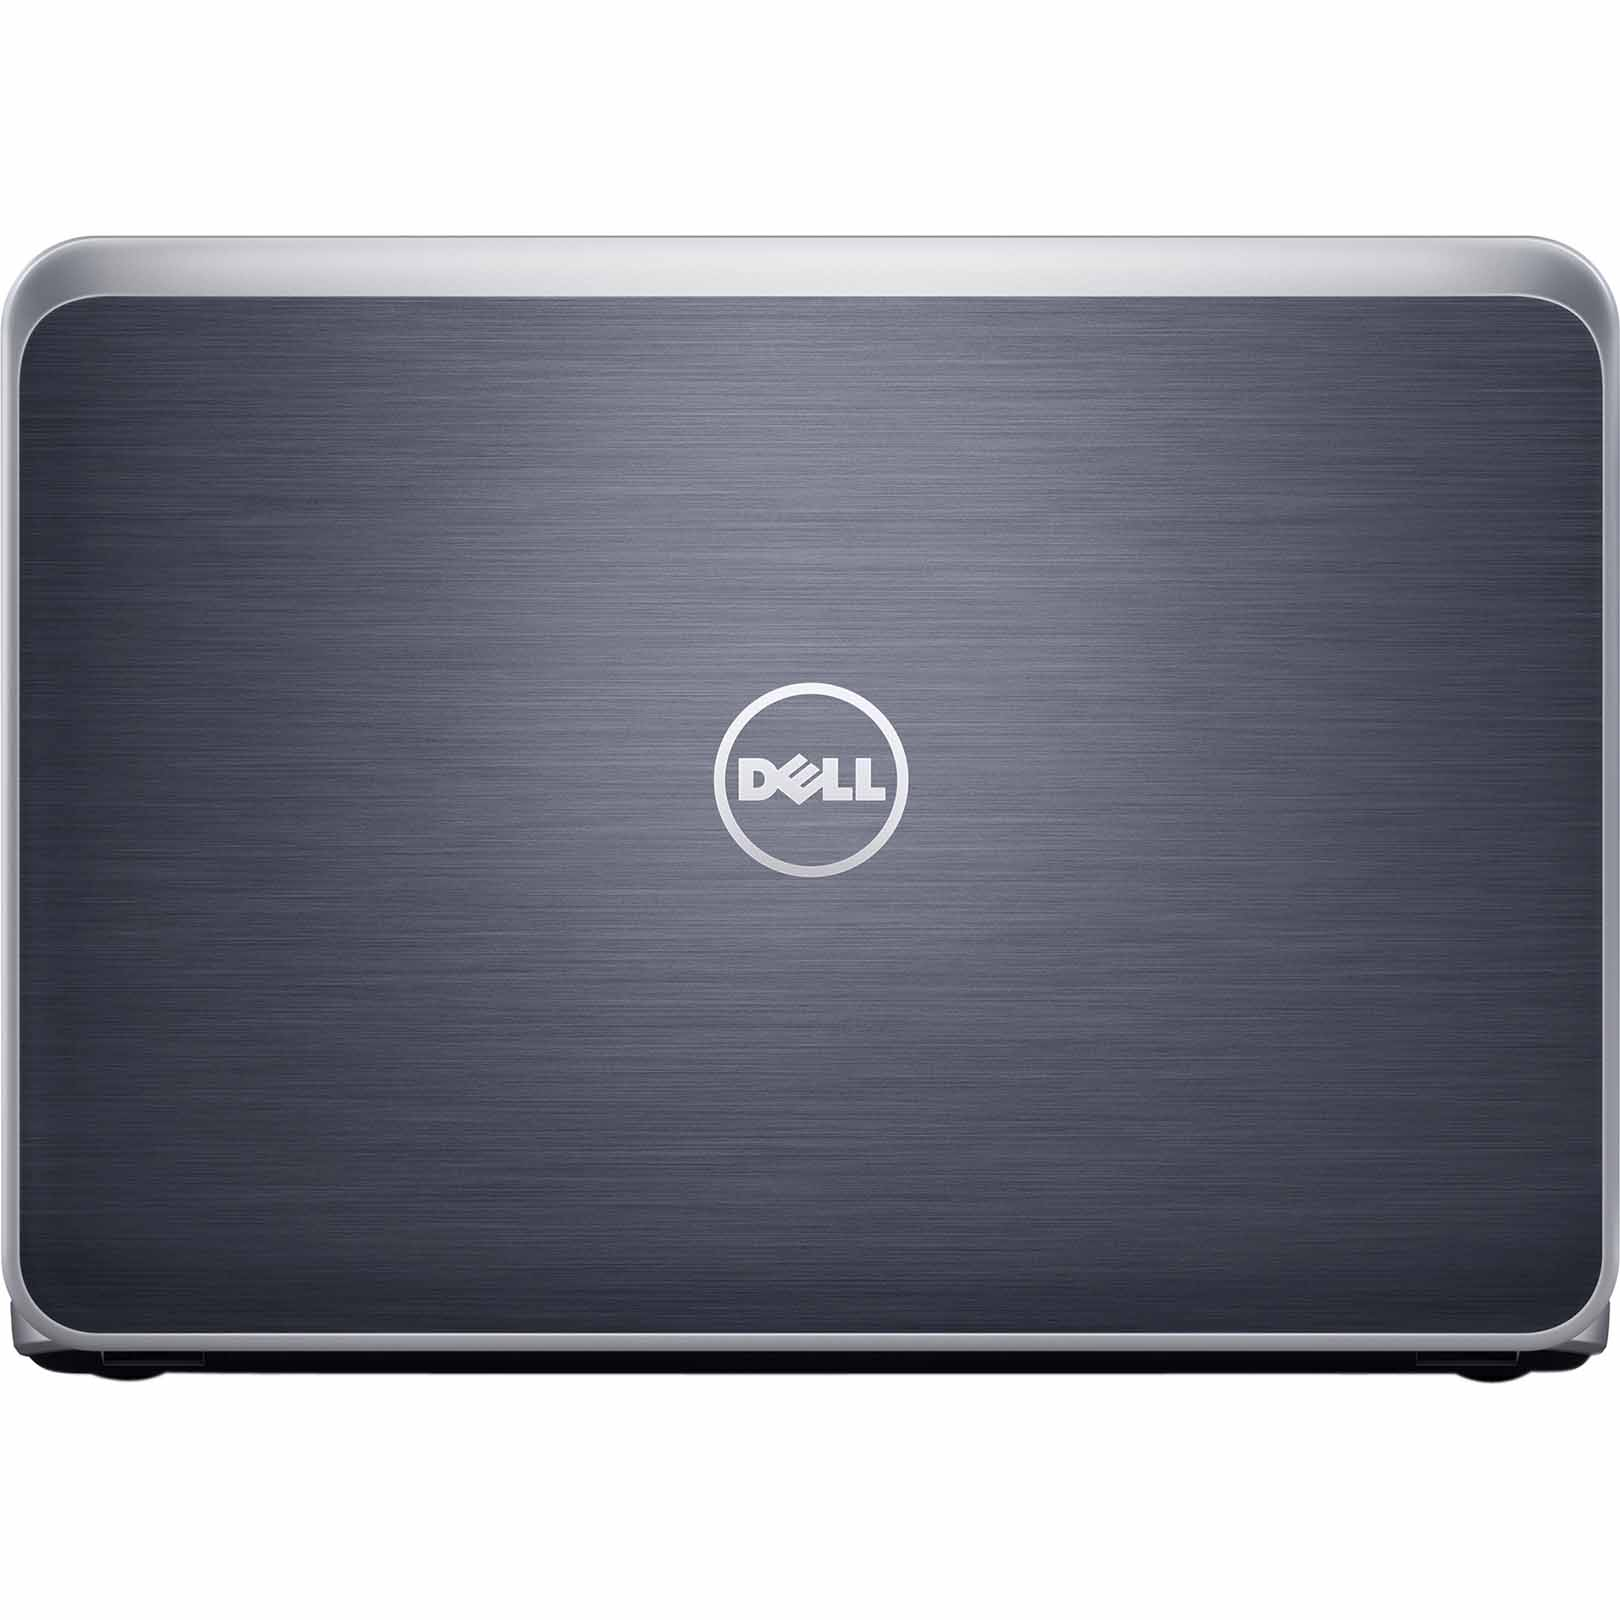 "Dell 6GB Inspiron Intel Core i5 3337U 1.8 GHz Laptop 15R i15RMT-5099SLV w/ 15.6"" Touchscreen"